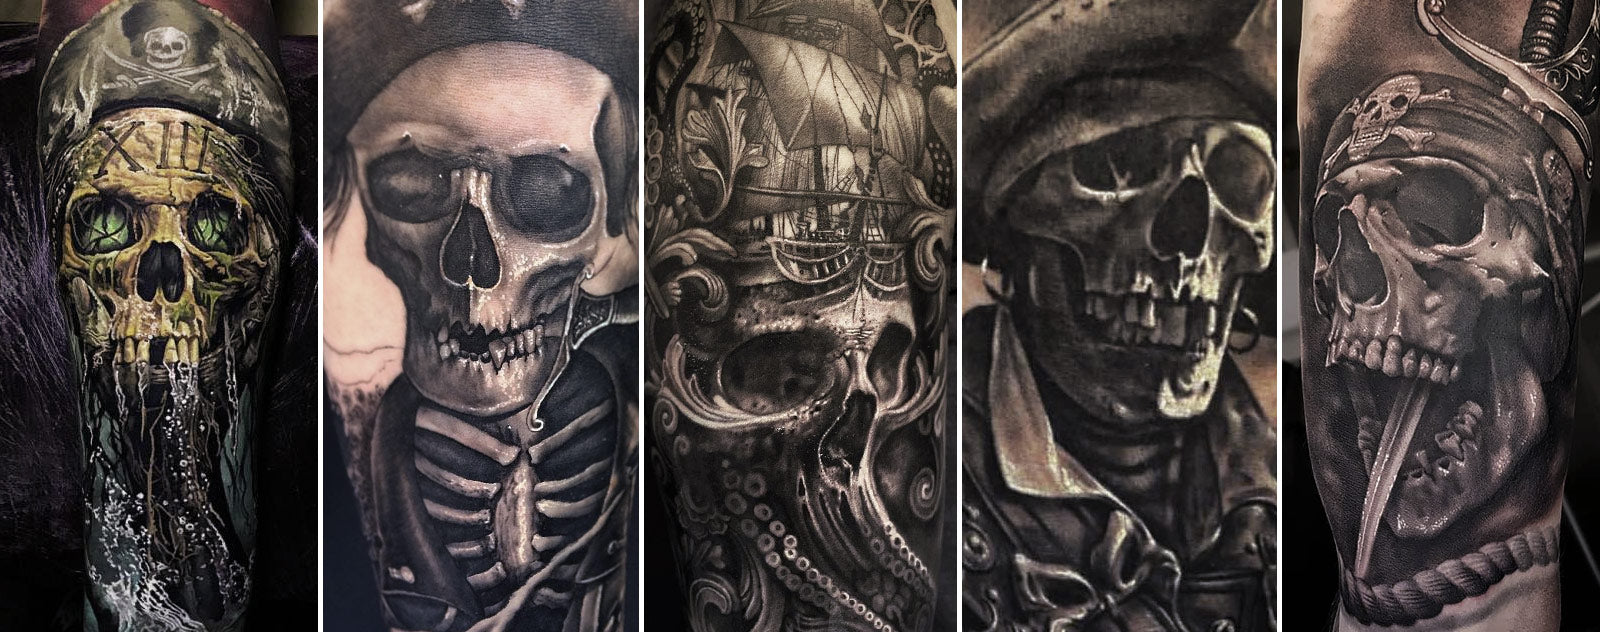 Tatouage Tete de Mort Pirate